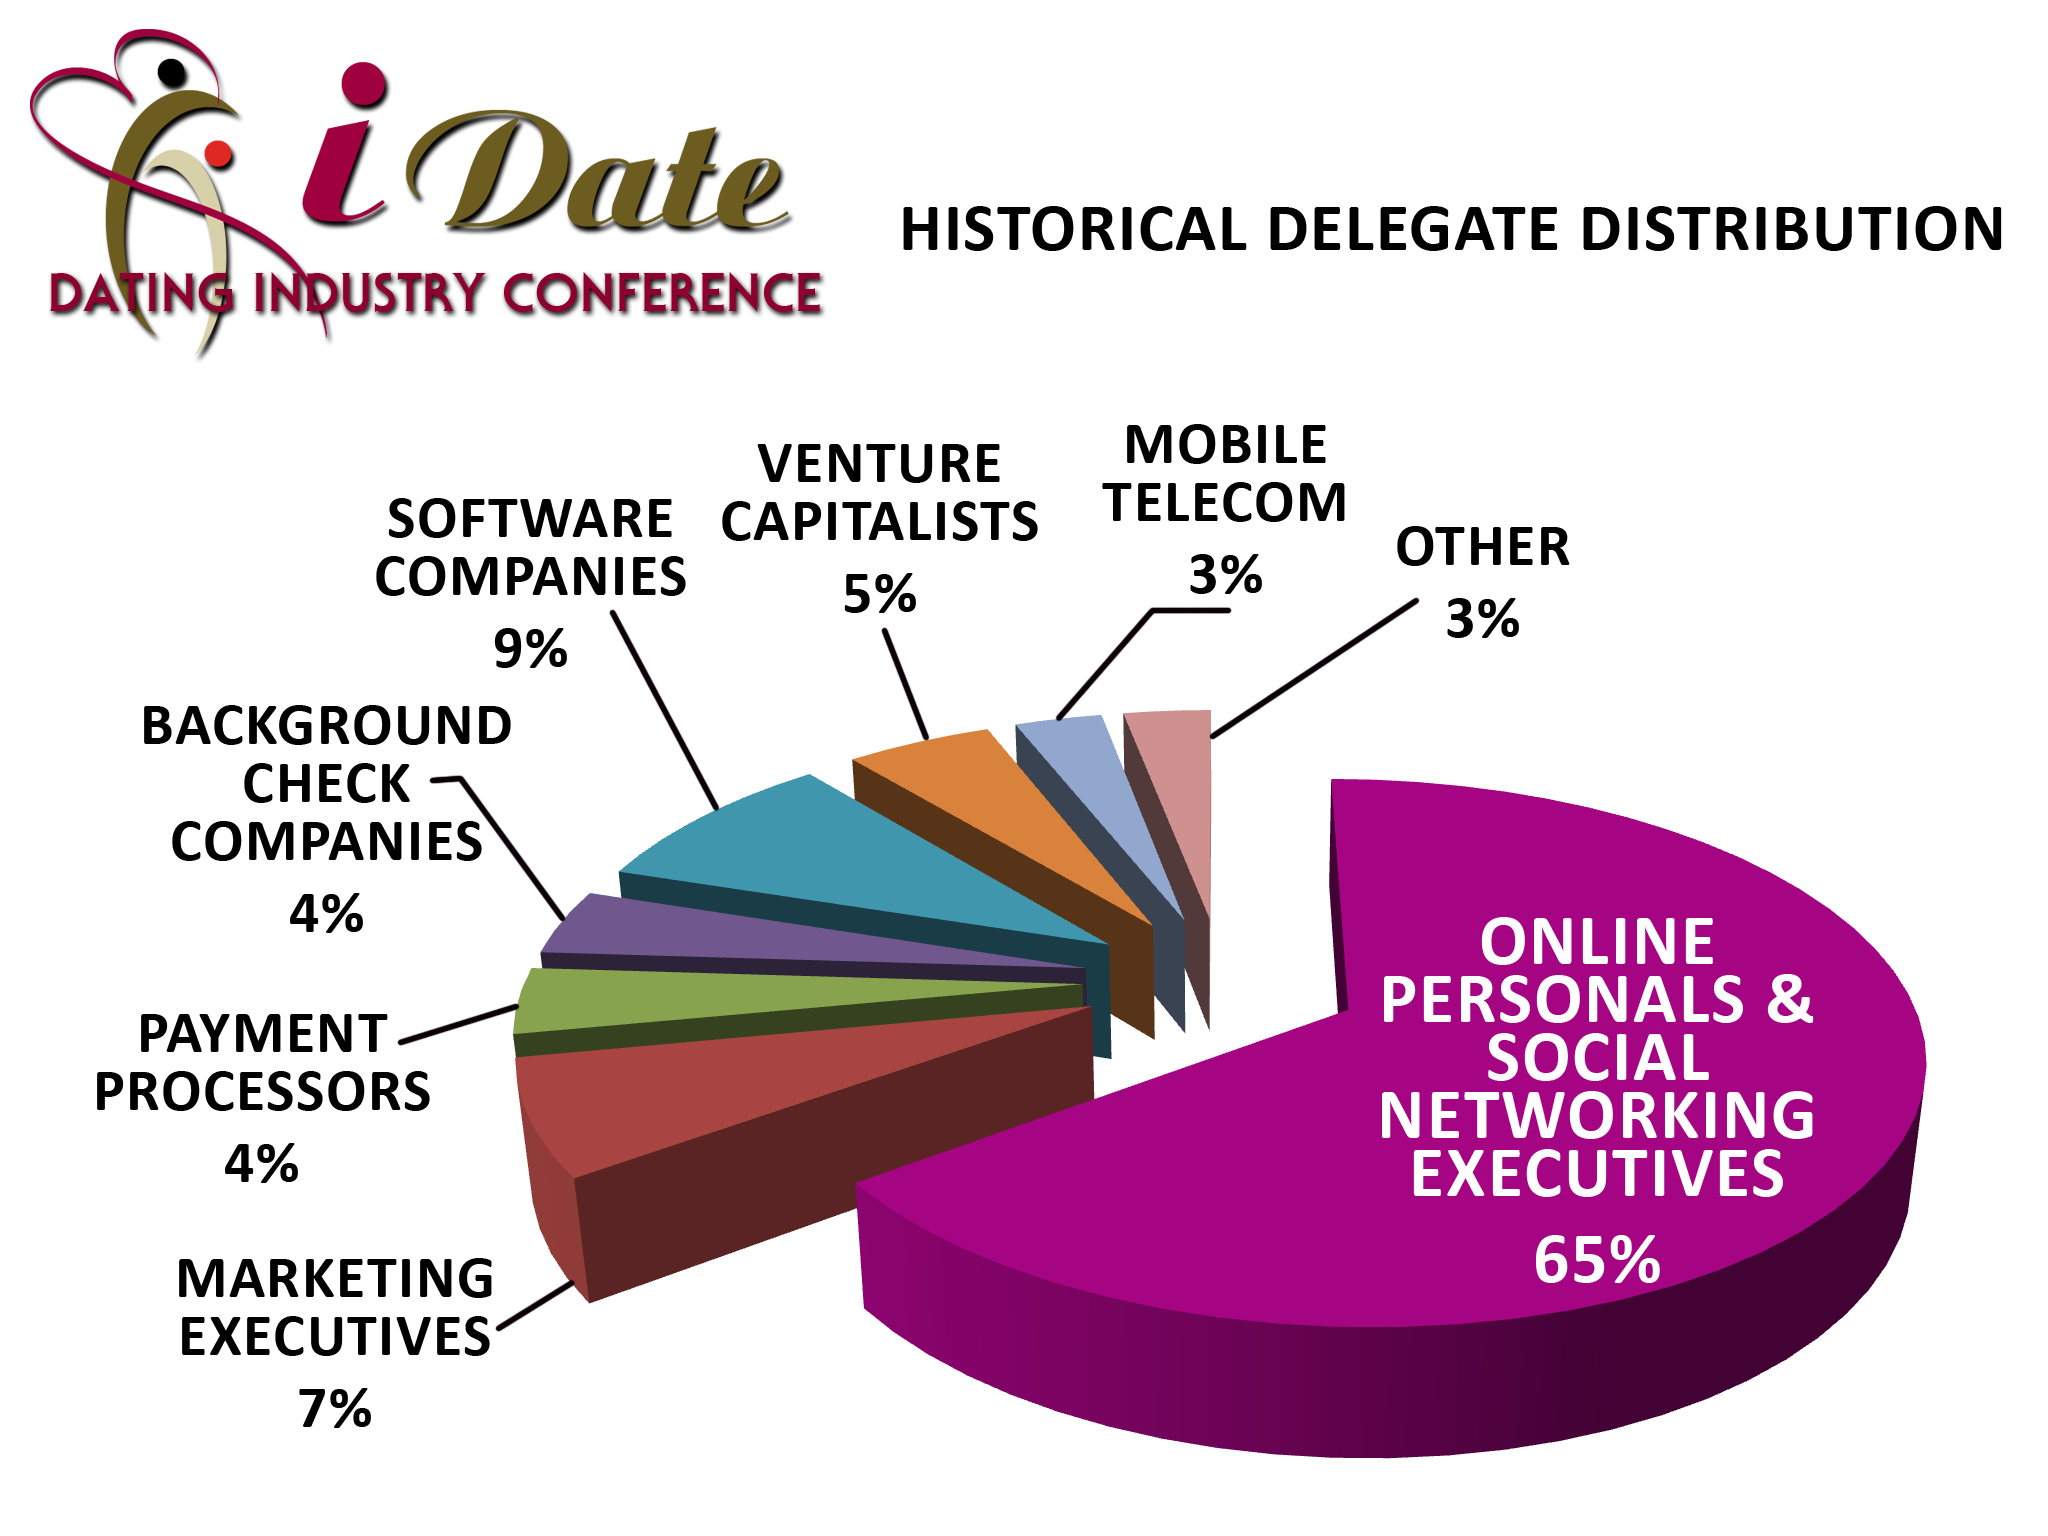 Internet Dating Conference Delegate Distribution